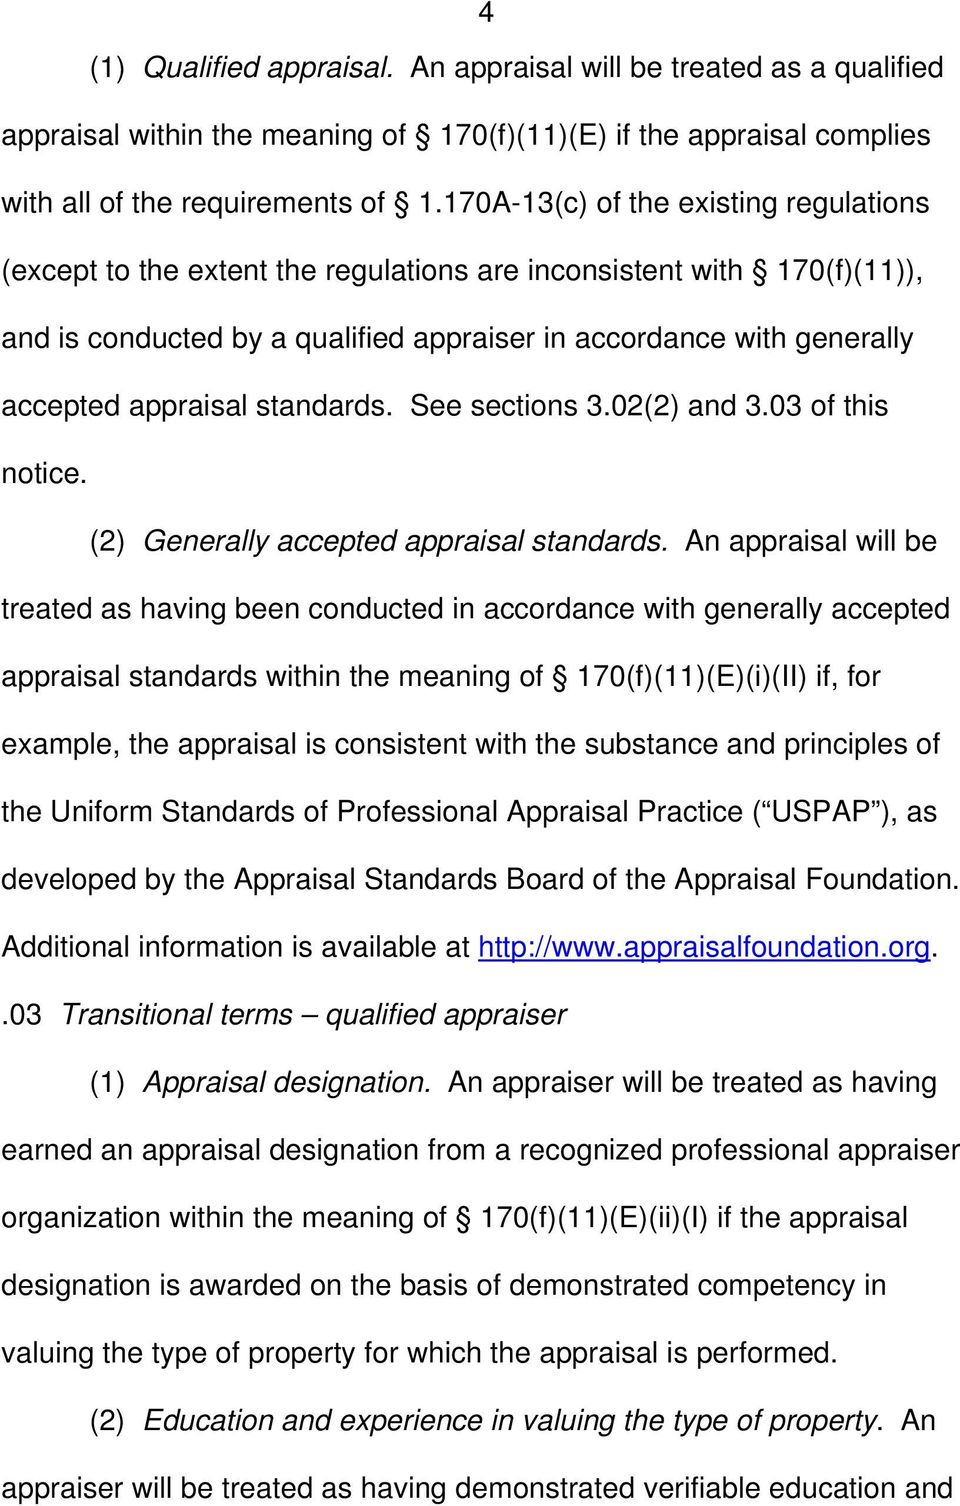 appraisal standards. See sections 3.02(2) and 3.03 of this notice. (2) Generally accepted appraisal standards.